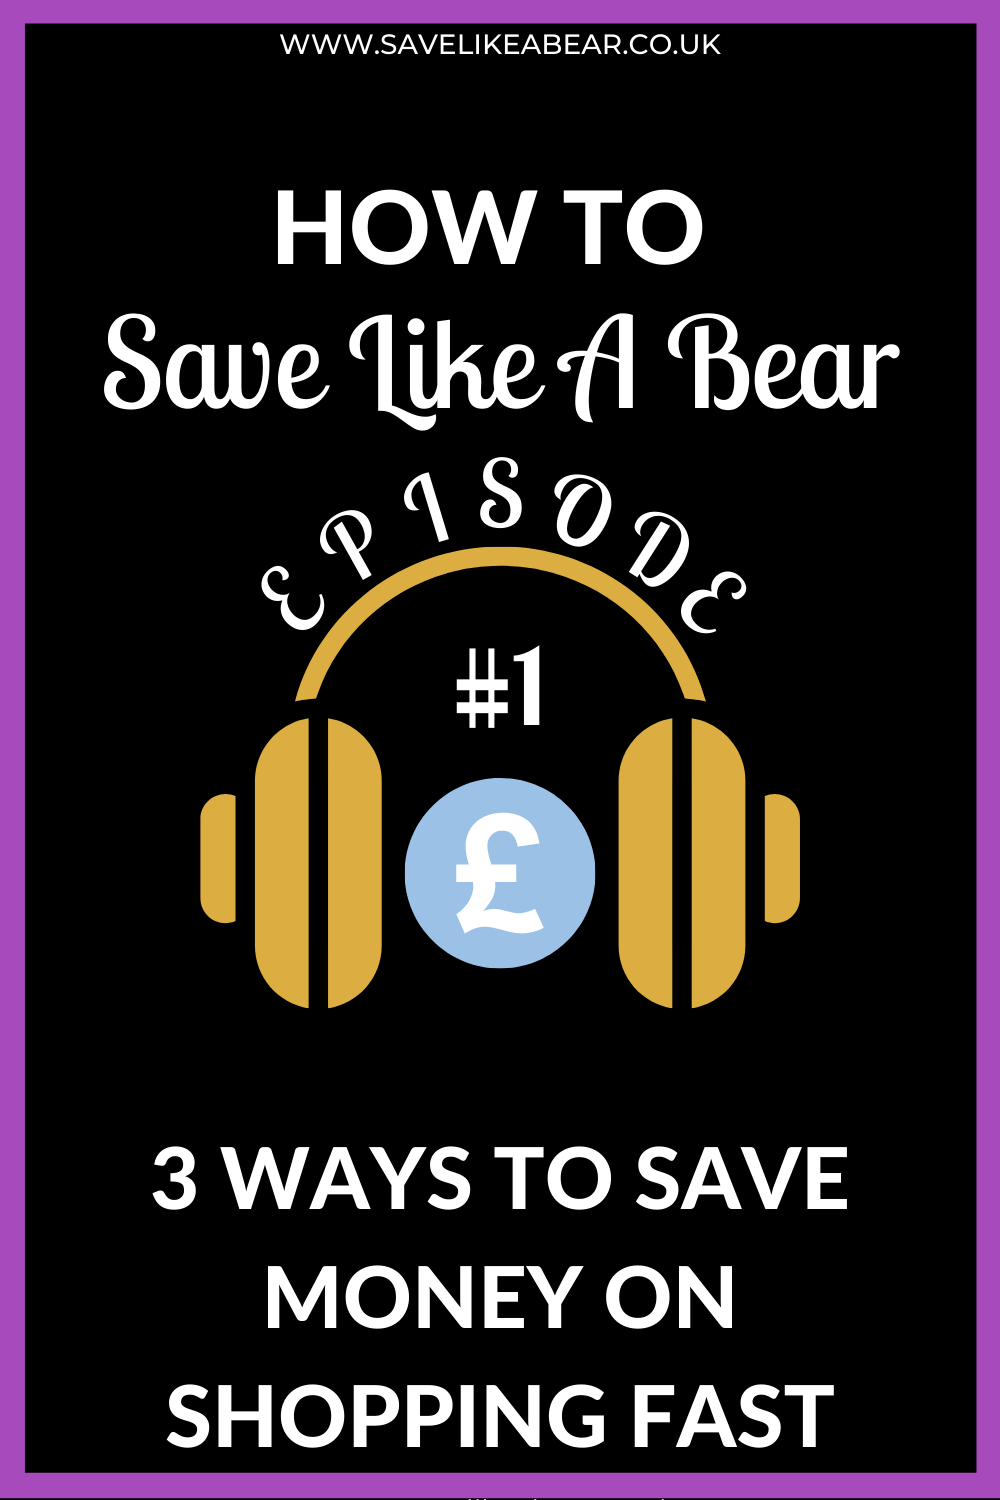 How to save like a bear podcast episode 1: 3 ways to save money on shopping fast